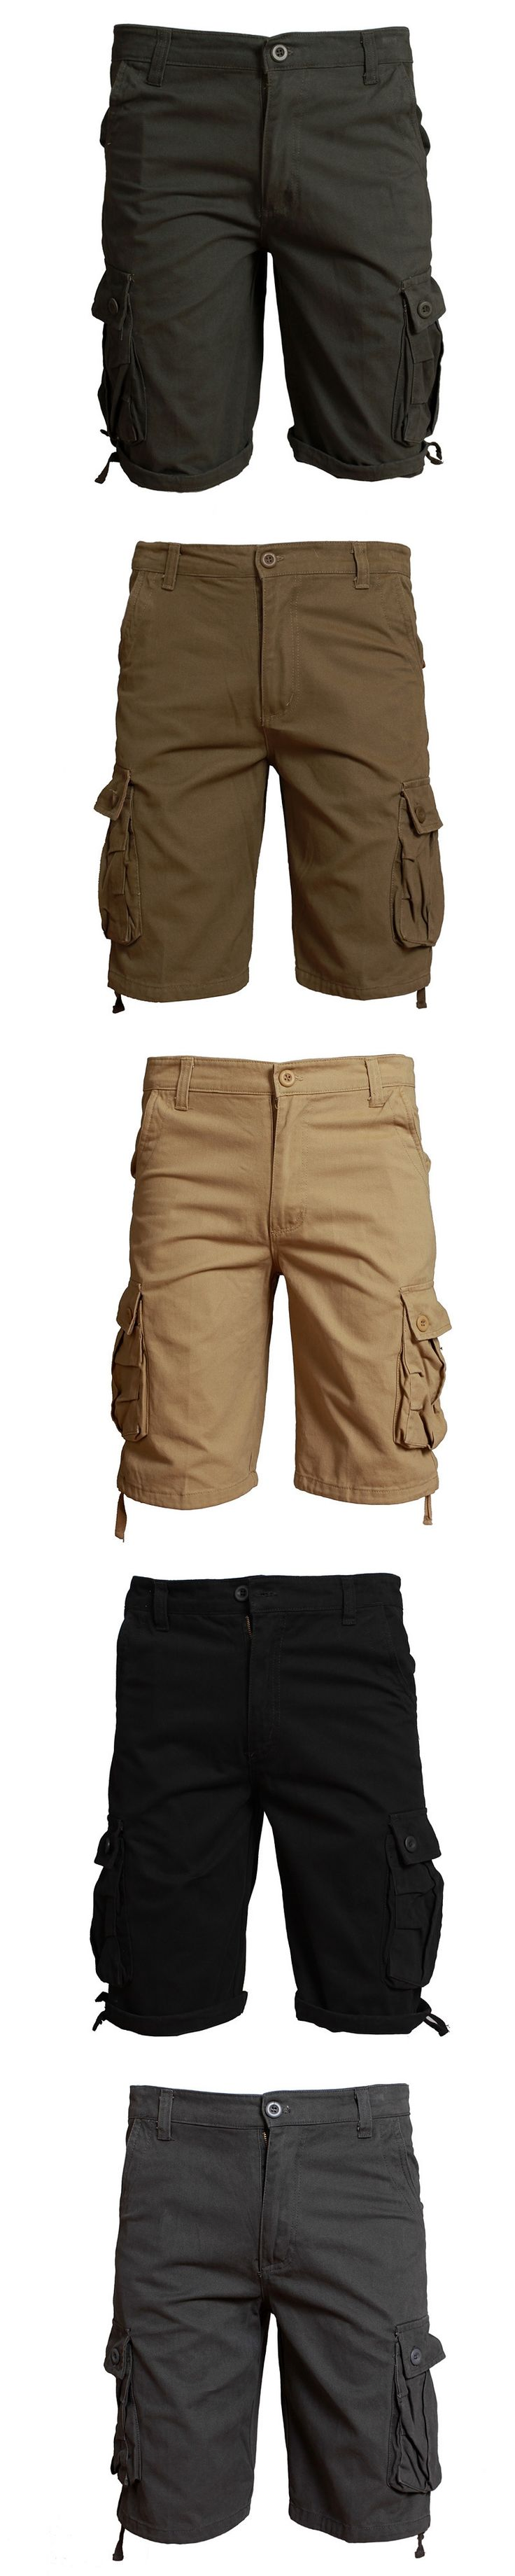 2017 Waterproof cargo military shorts Large size 30-44 thin material for summer short pants short masculino